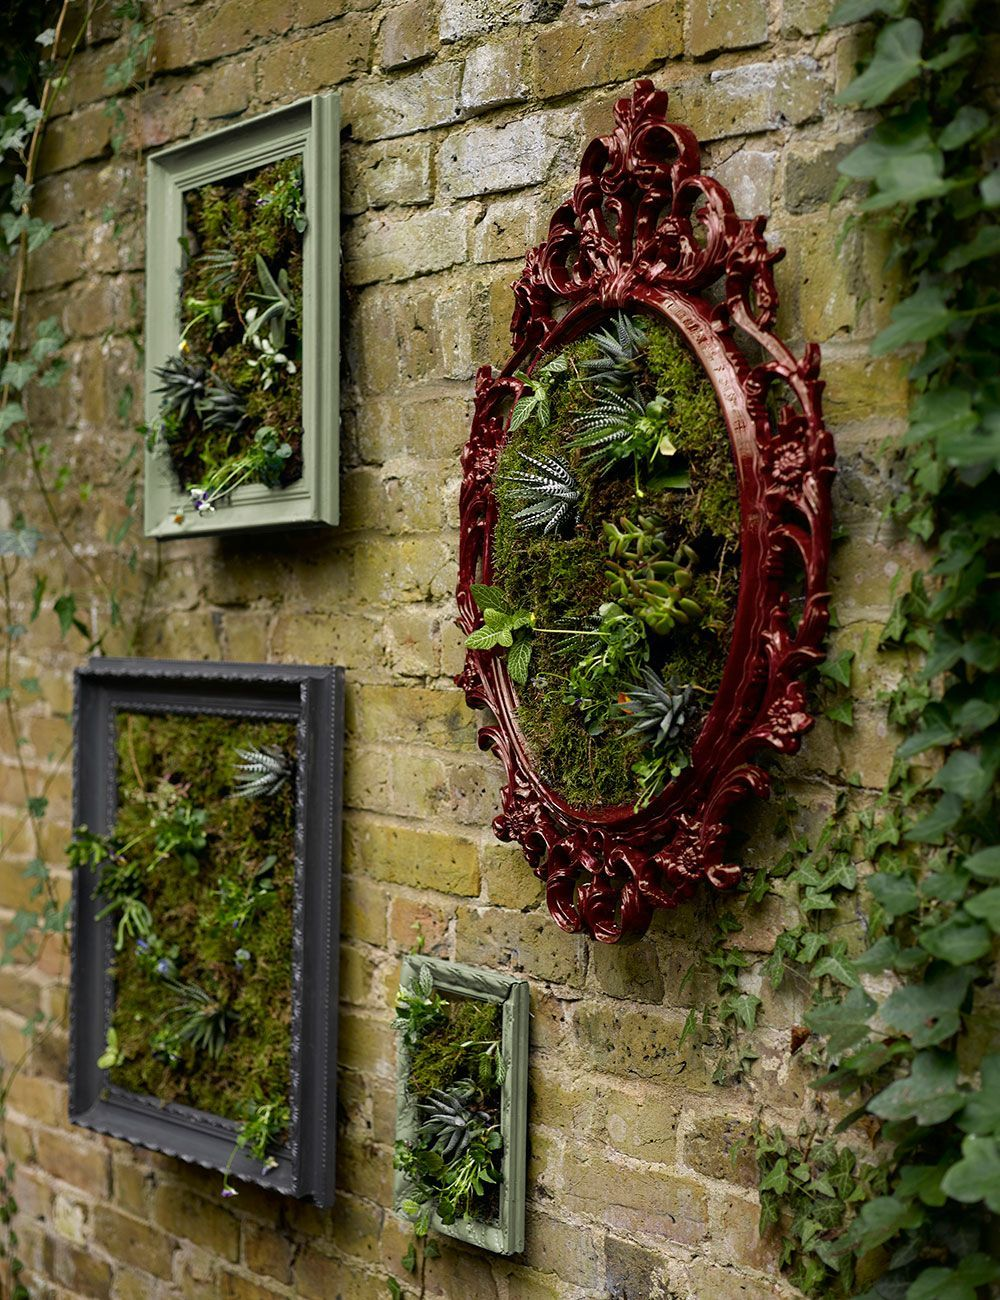 How to make a wall garden with succulent plants in picture frames | Ideal Home